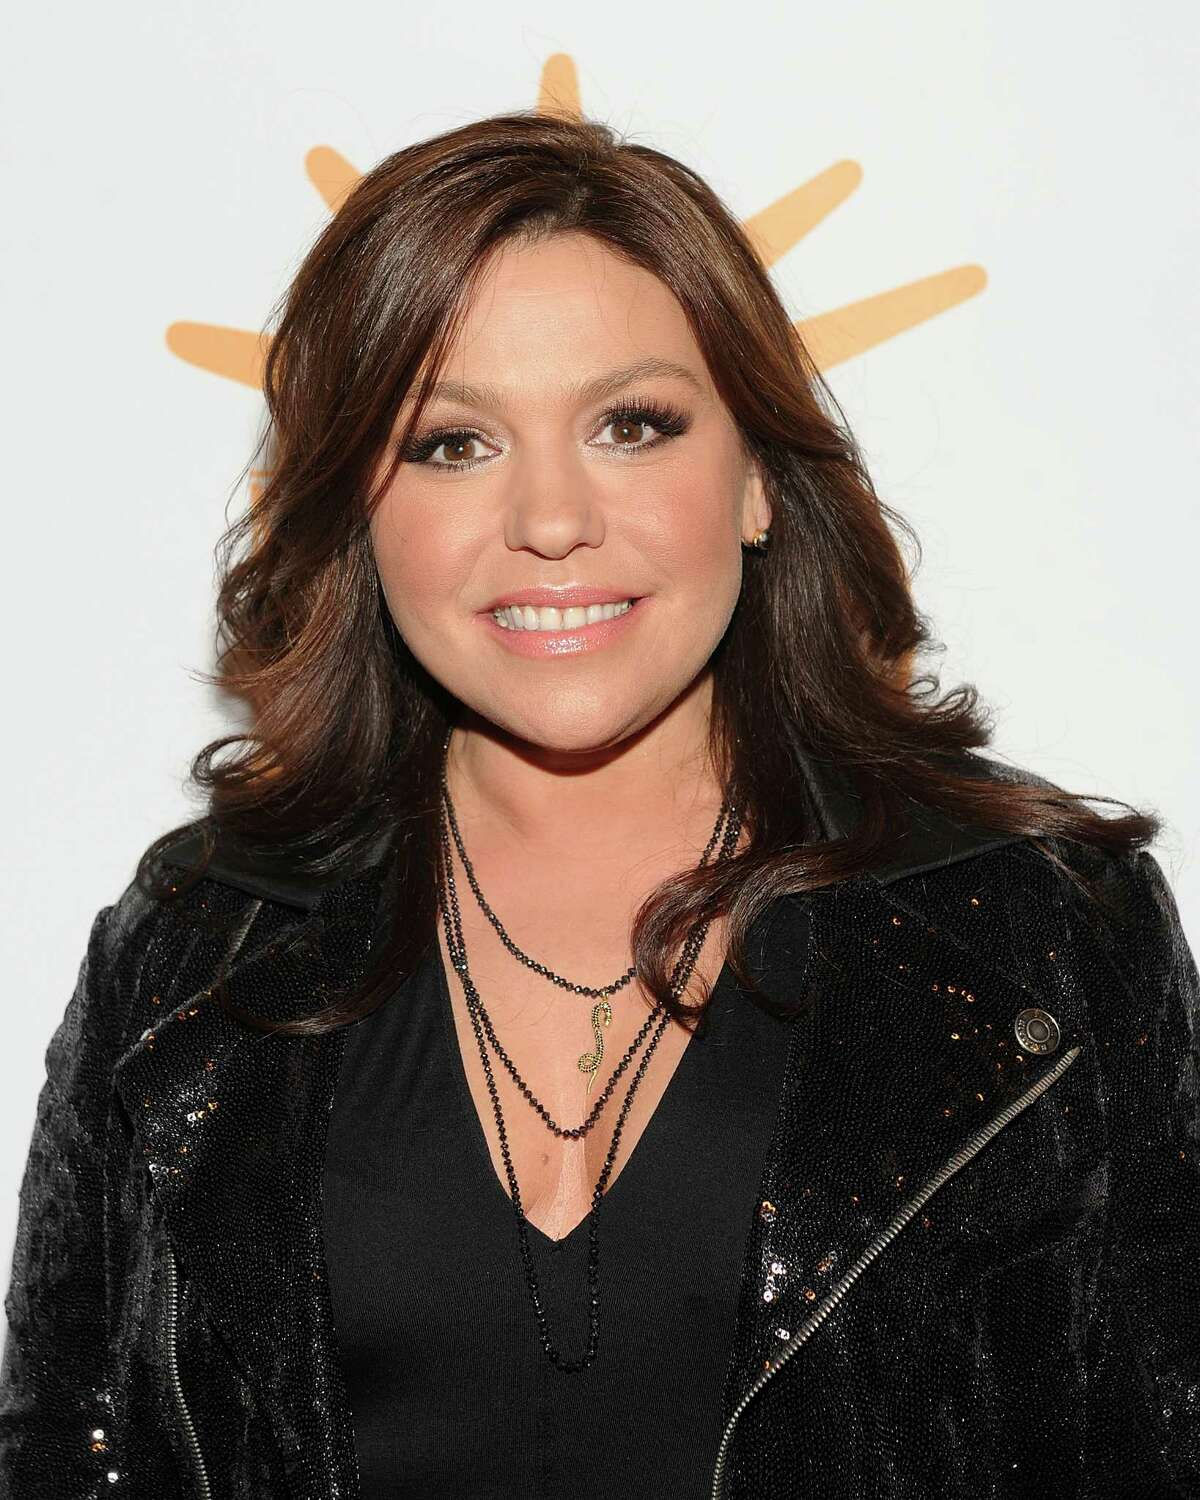 Lake George and Glens Falls Rachael Ray  Food network personality, celebrity chef and author.